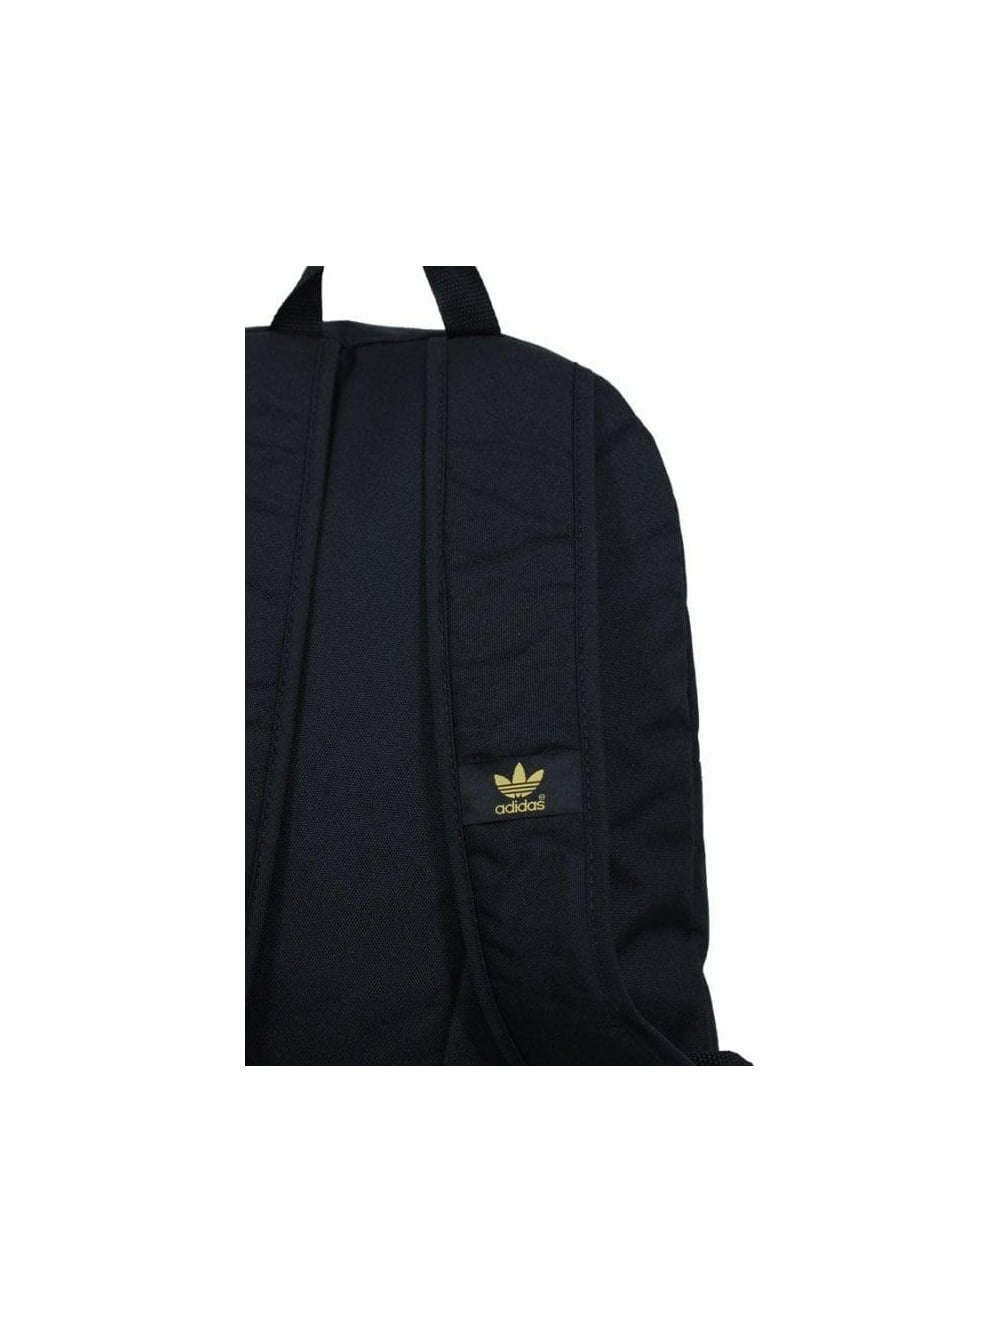 48aff62ea6c8 Adidas Originals AC Classic Backpack in Black - Northern Threads